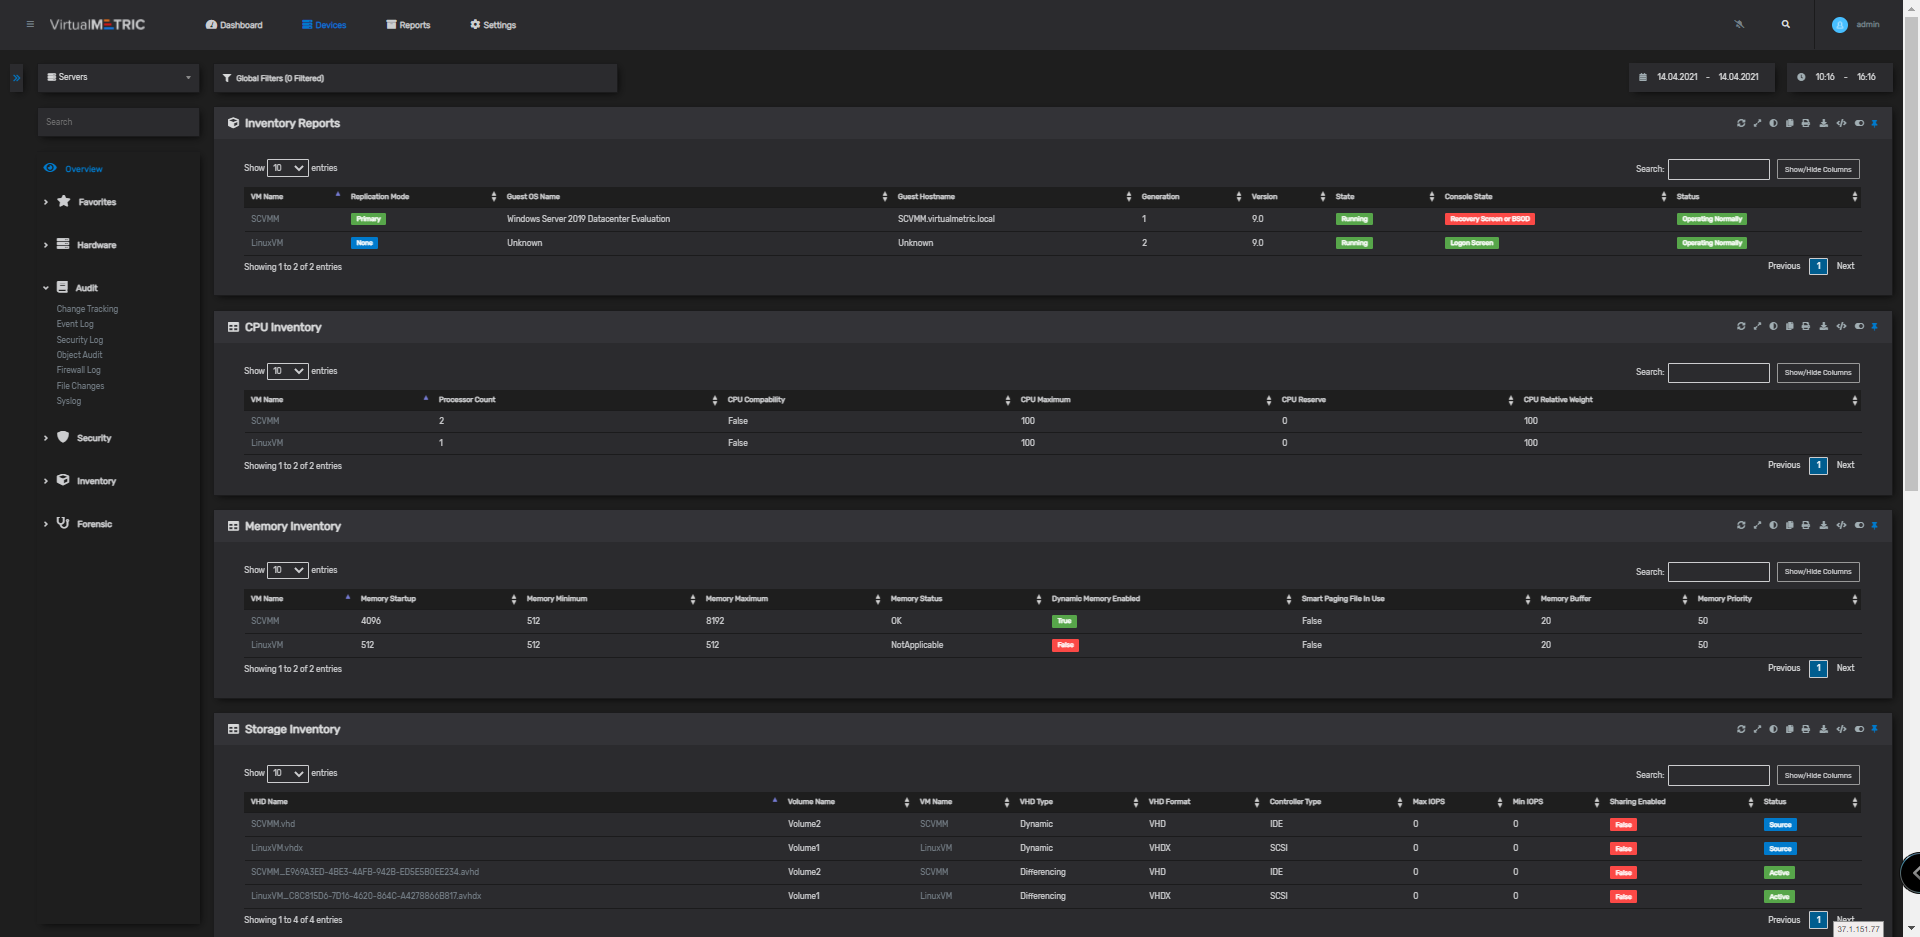 Centralized Assets Tracking